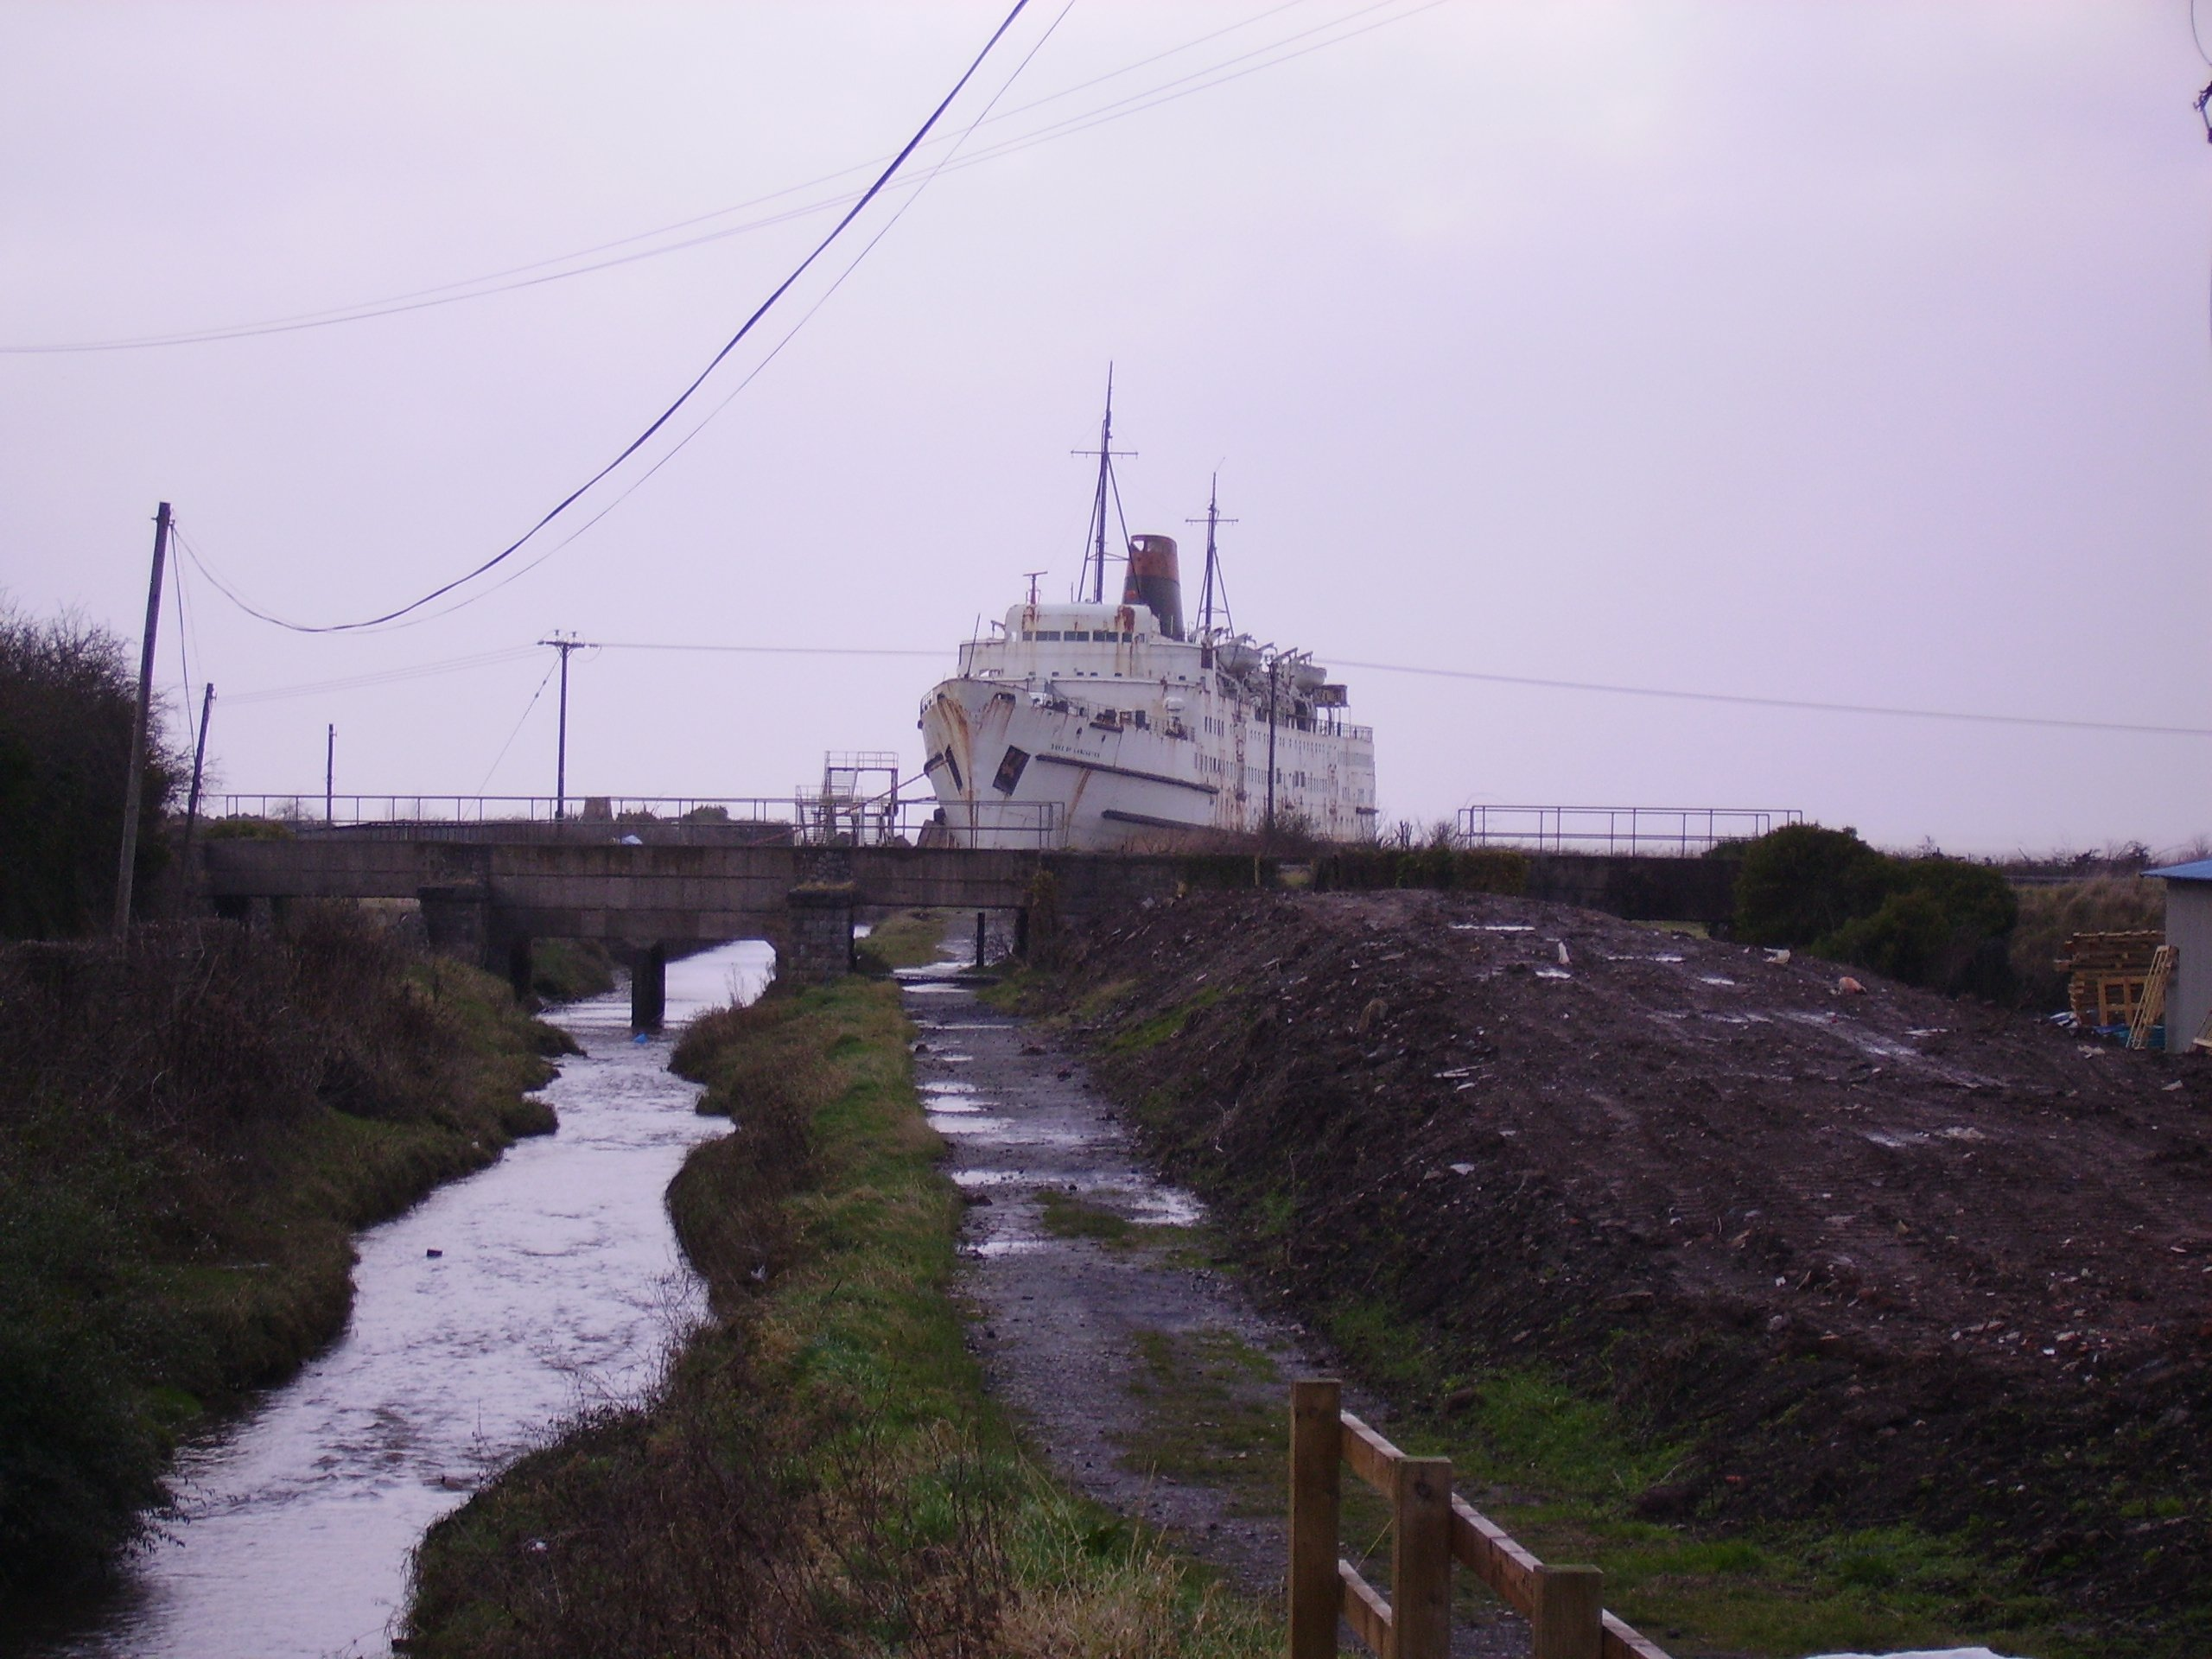 The Duke of Lancaster Too